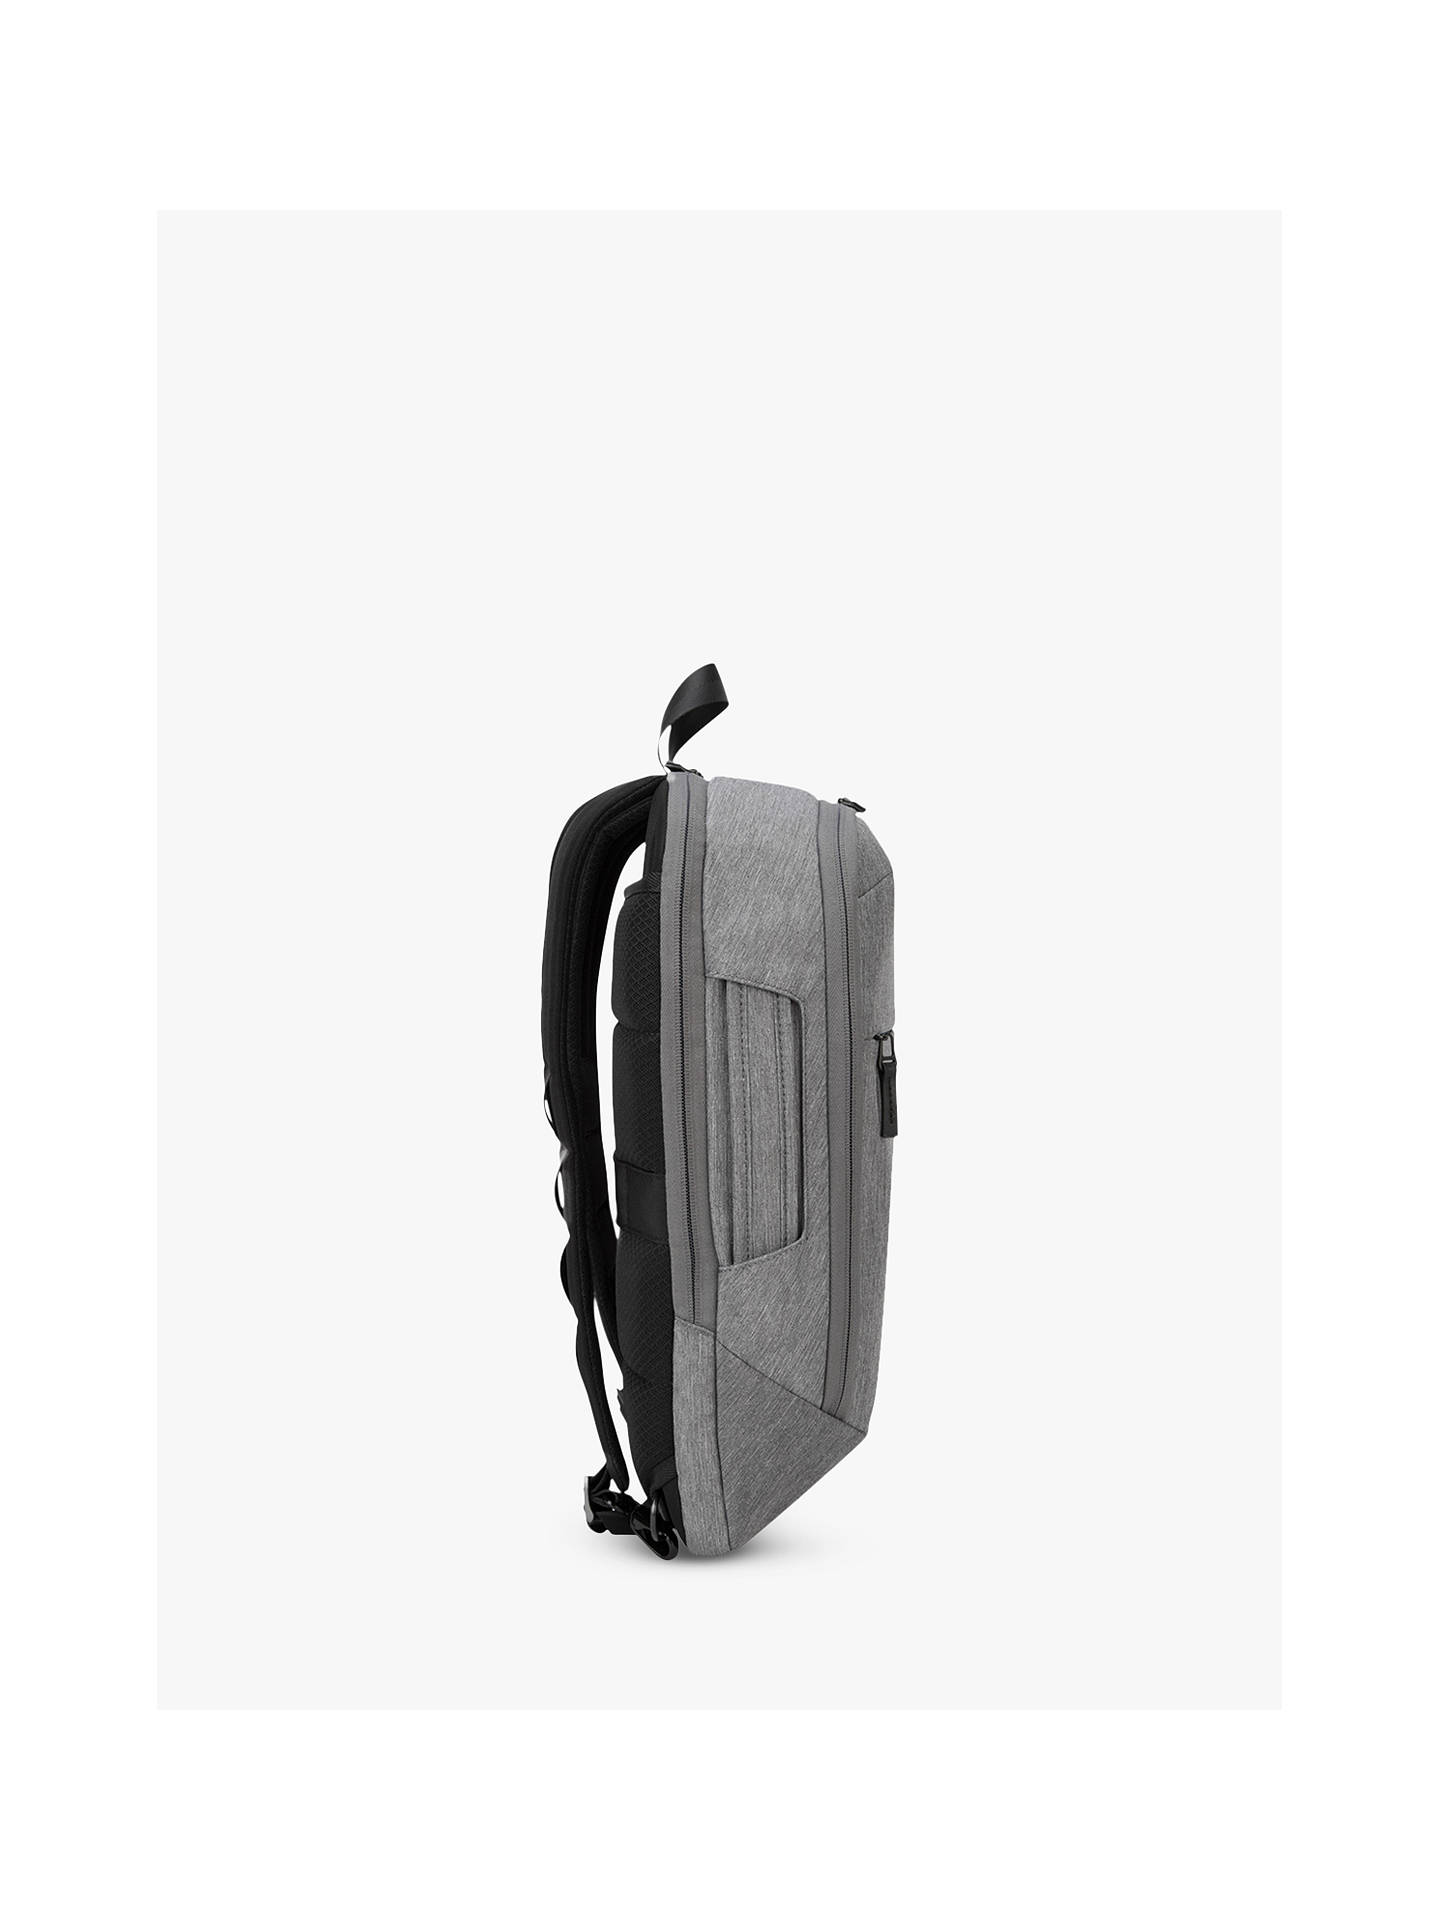 5d153c5d68e ... BuyTargus CityLite Convertible Backpack   Briefcase for Laptops up to  15.6